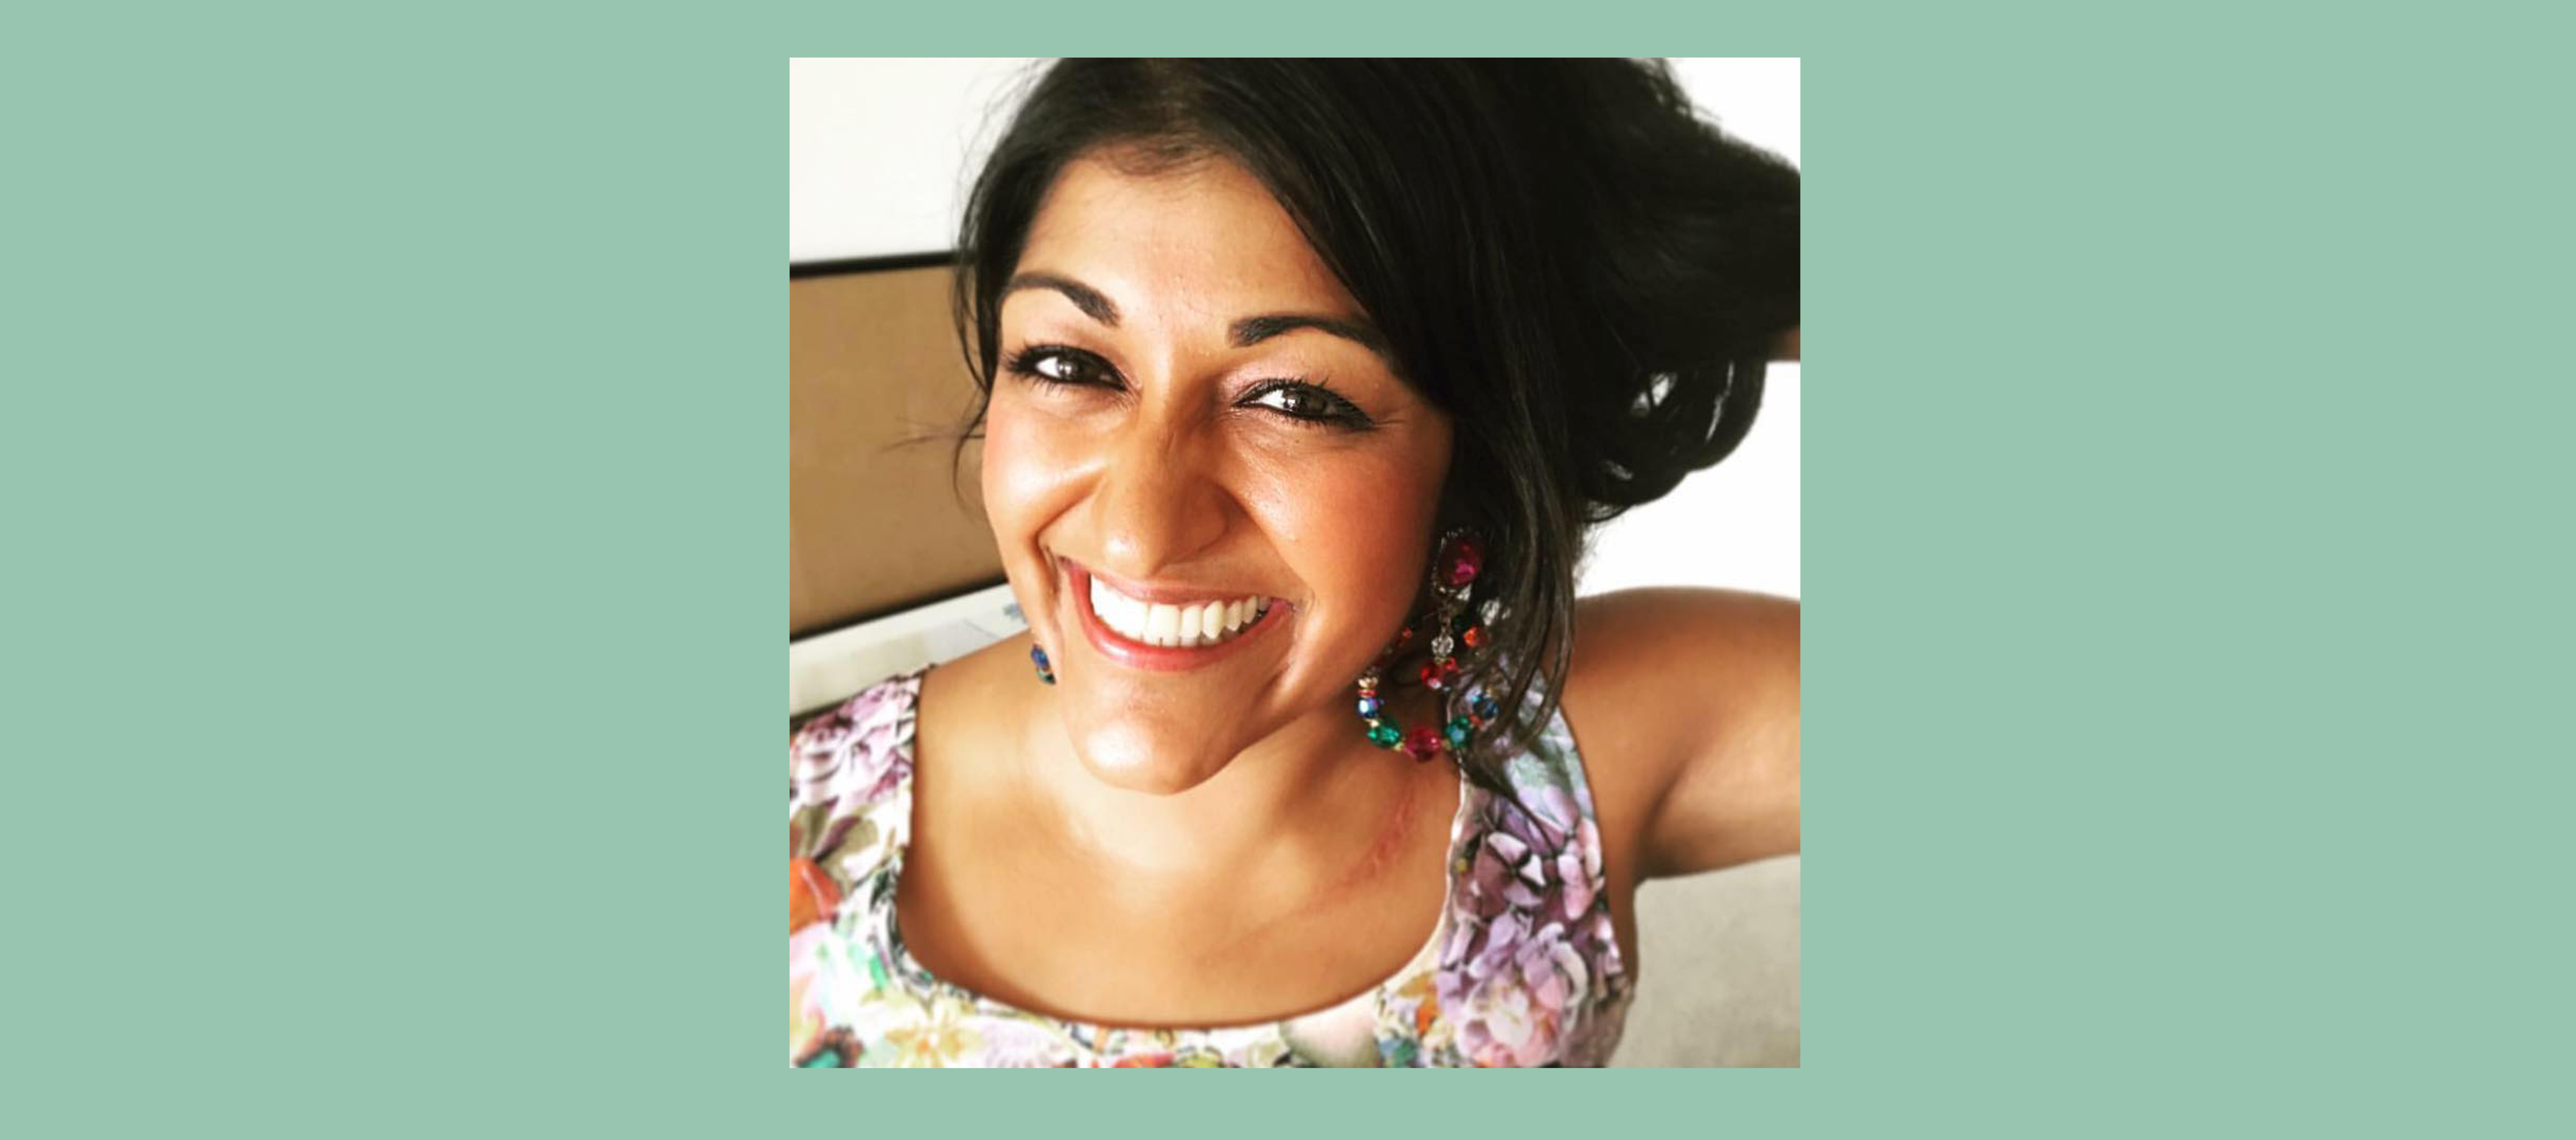 From Bollywood to Cleverman, Mithila Gupta is a screenwriter bringing truth, passion and make-believe to our screens. , News